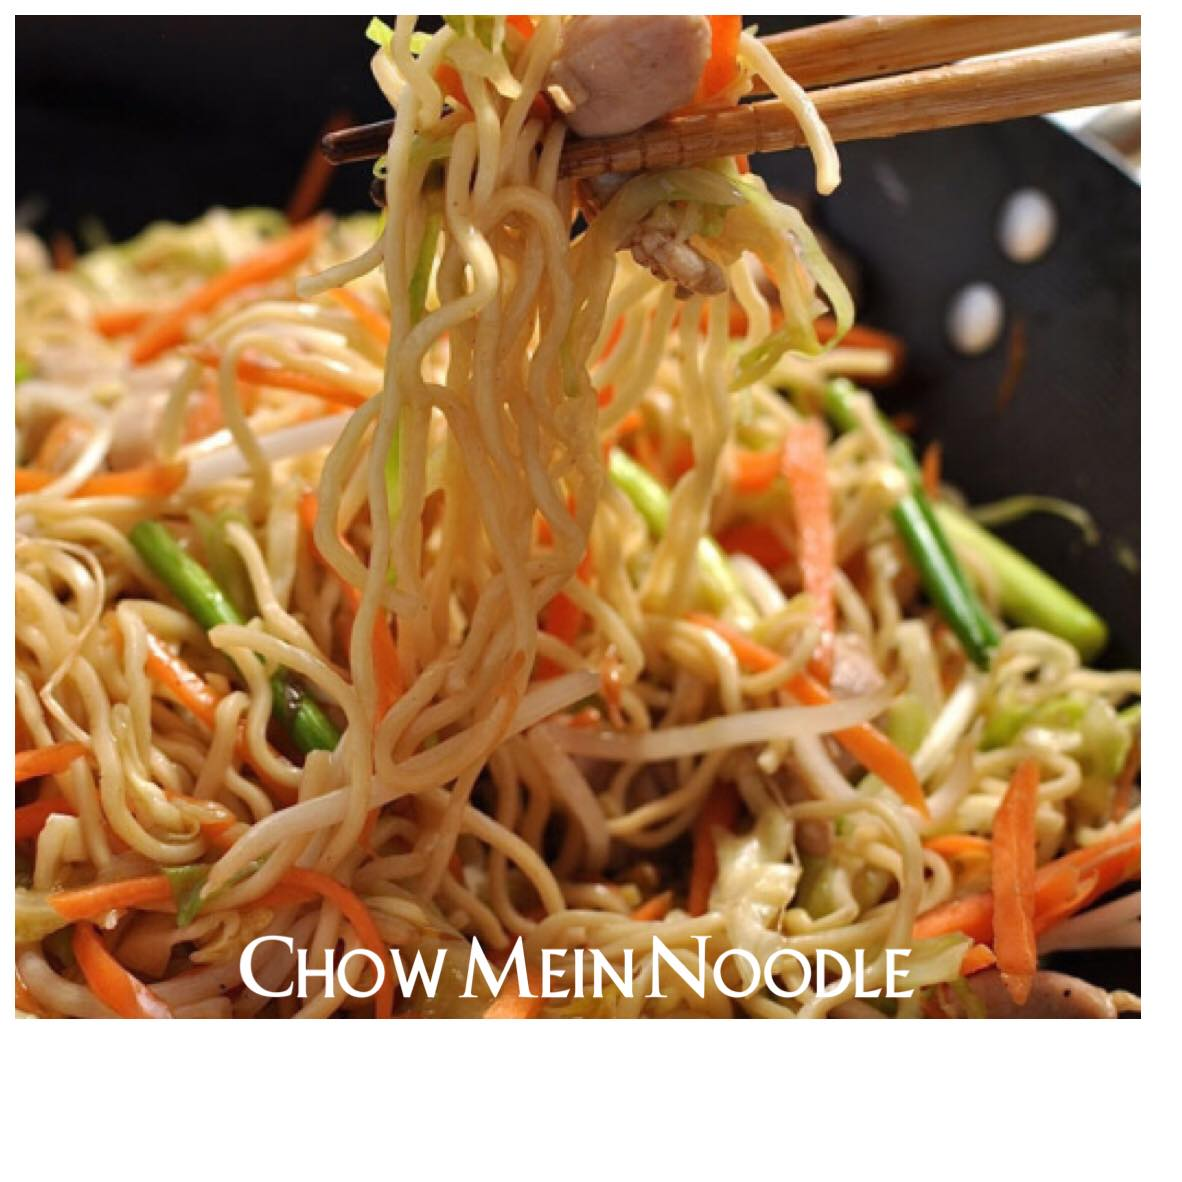 Chown Mein Noodle Image